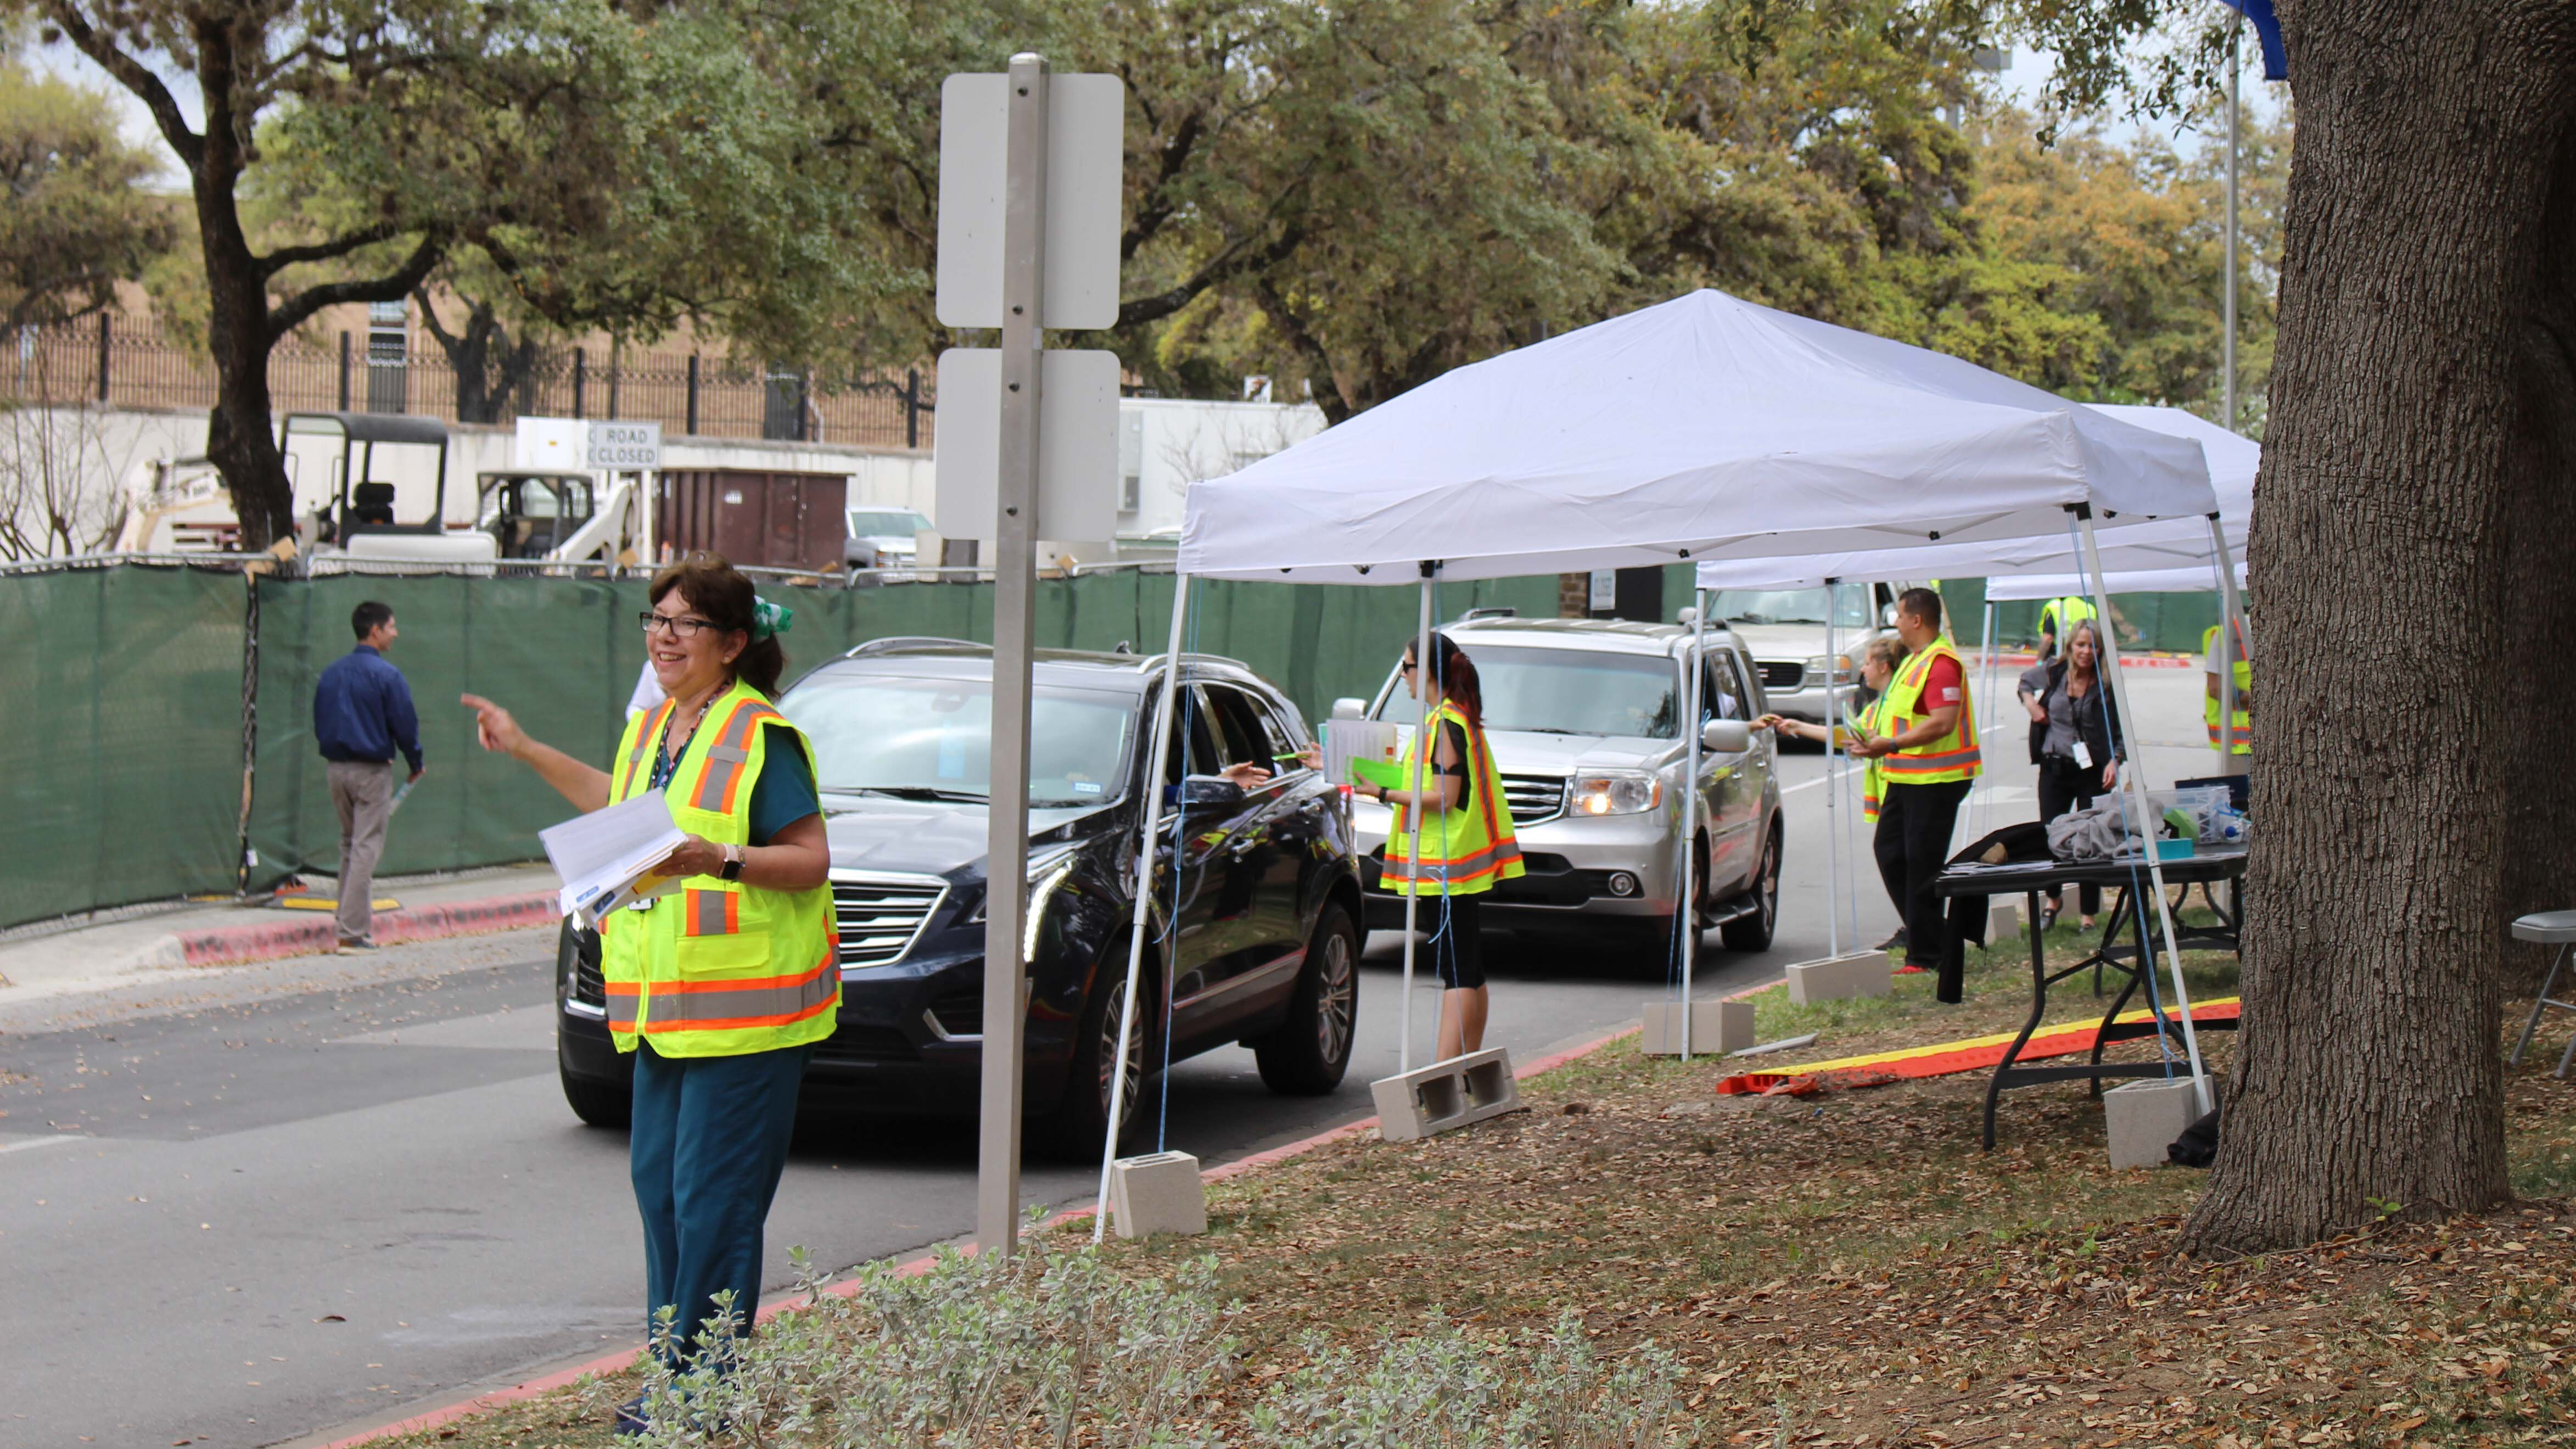 Caption: VA staff and volunteers screen patients, employees, and visitors at the entrance to the Audie Murphy Memorial VA Hospital in San Antonio., Credit: Carson Frame / American Homefront